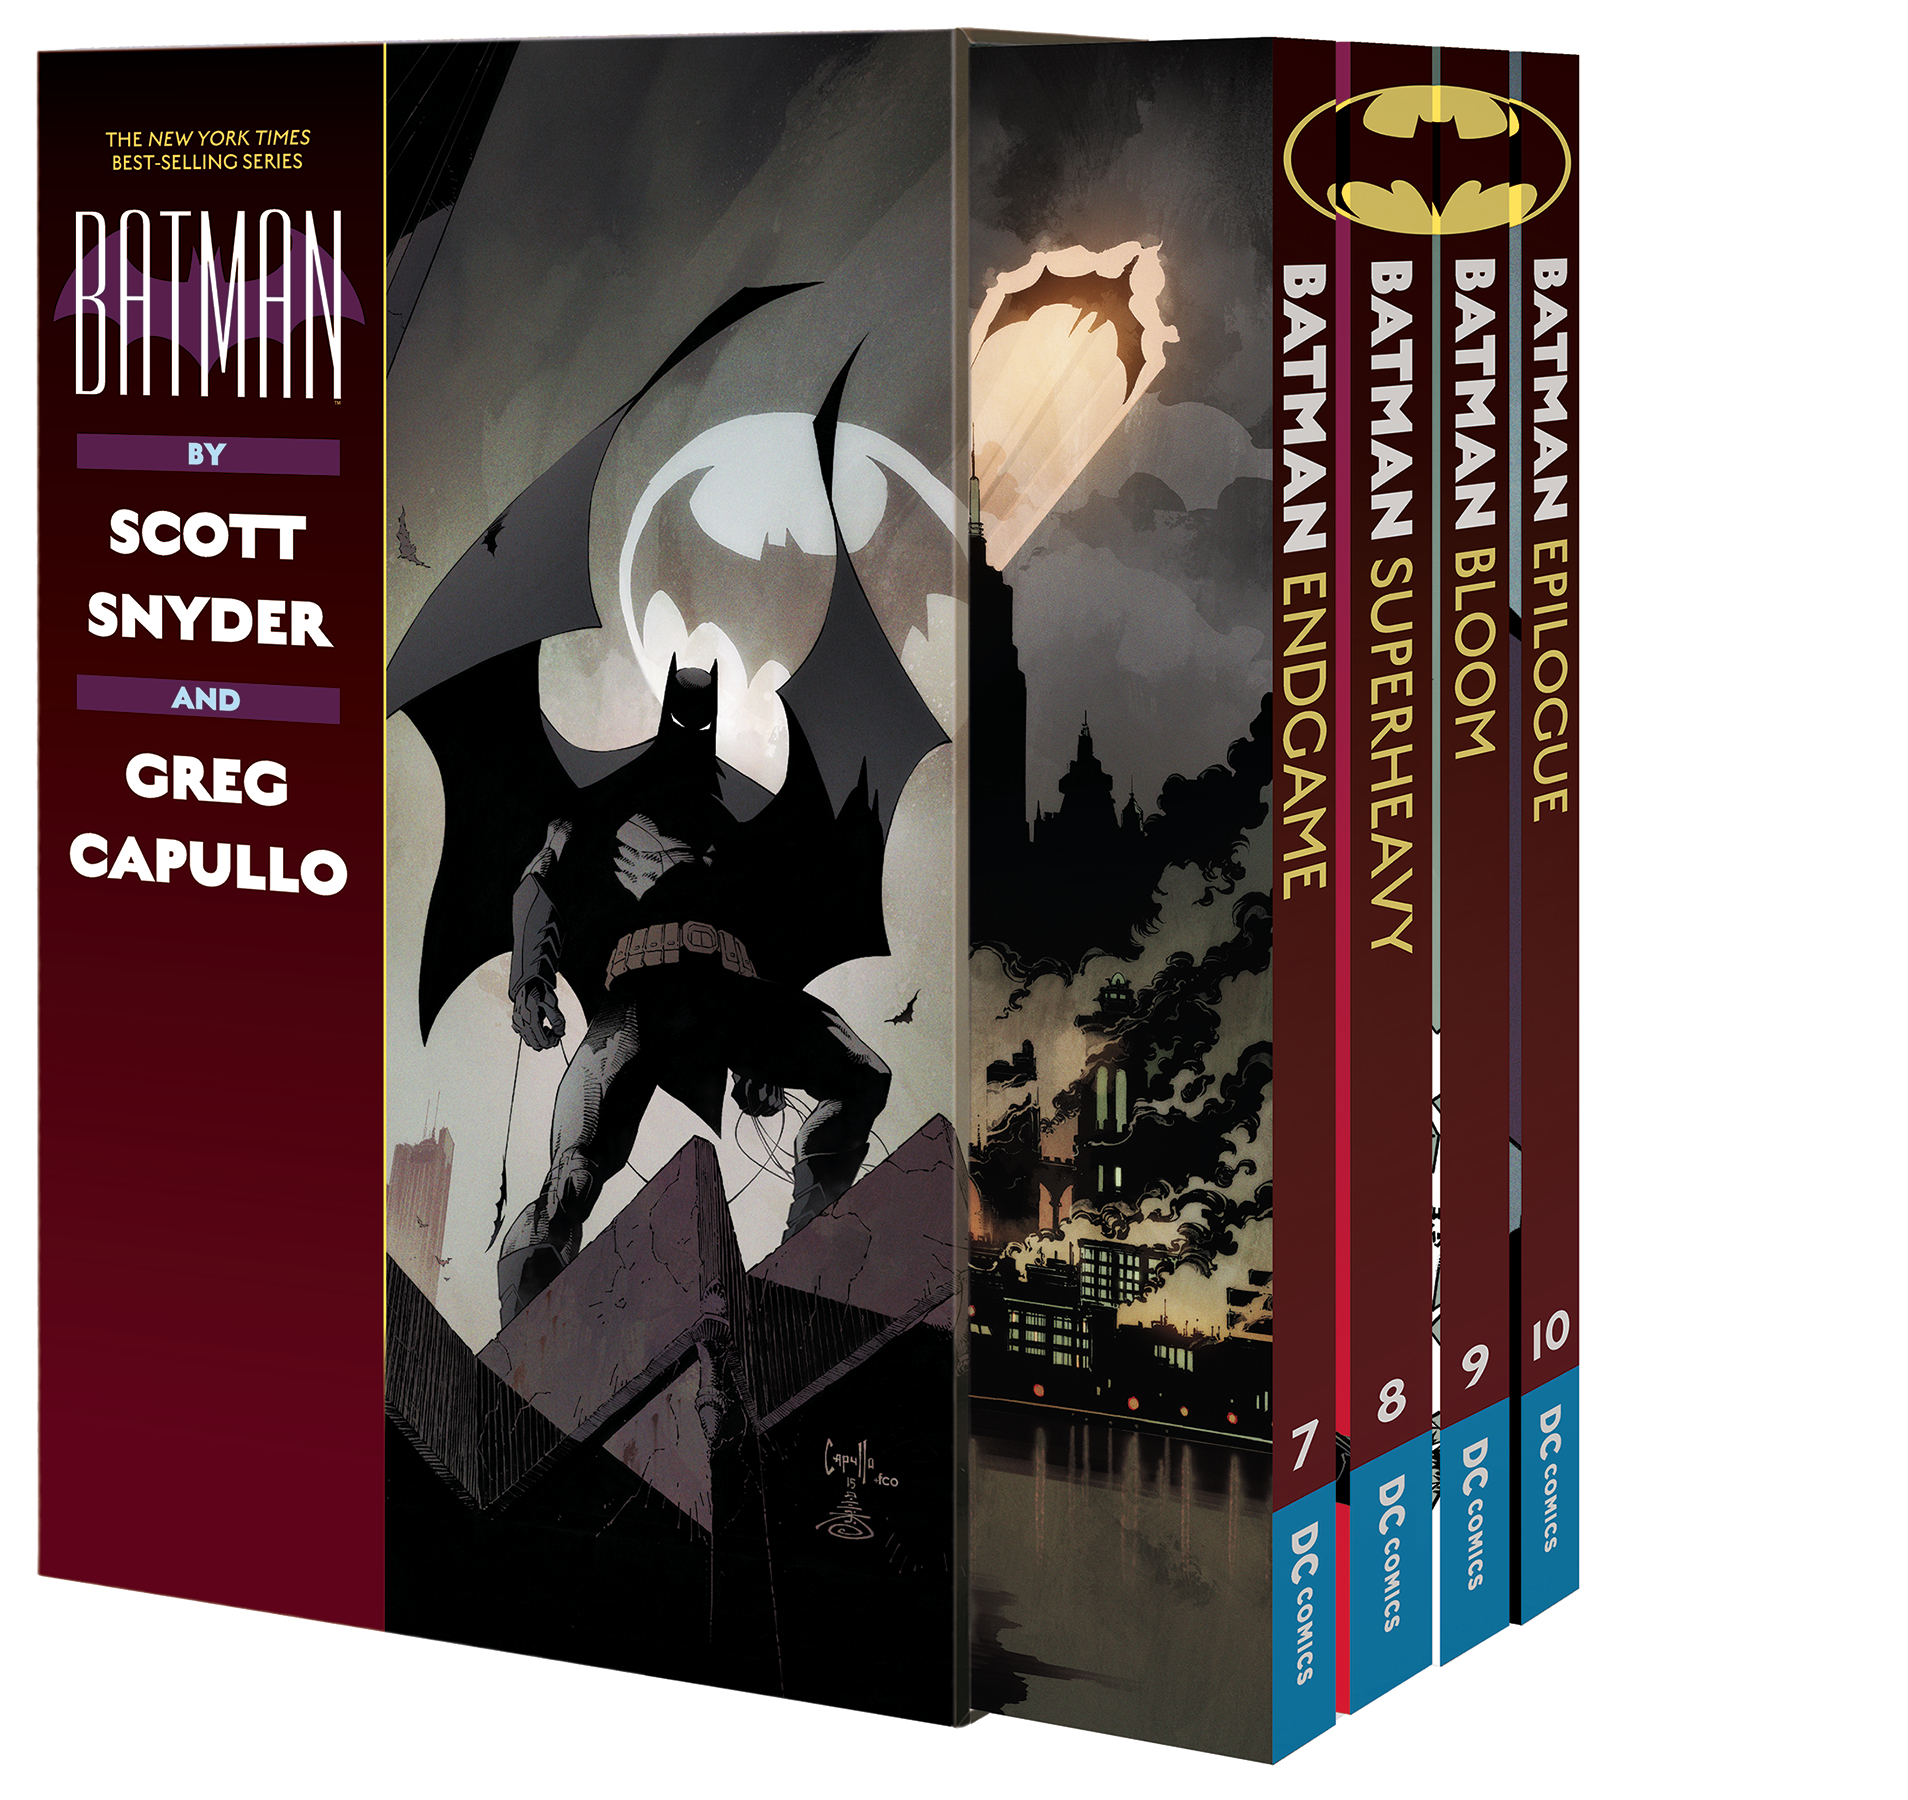 BATMAN BY SCOTT SNYDER & GREG CAPULLO BOX SET 3 (v7-10)